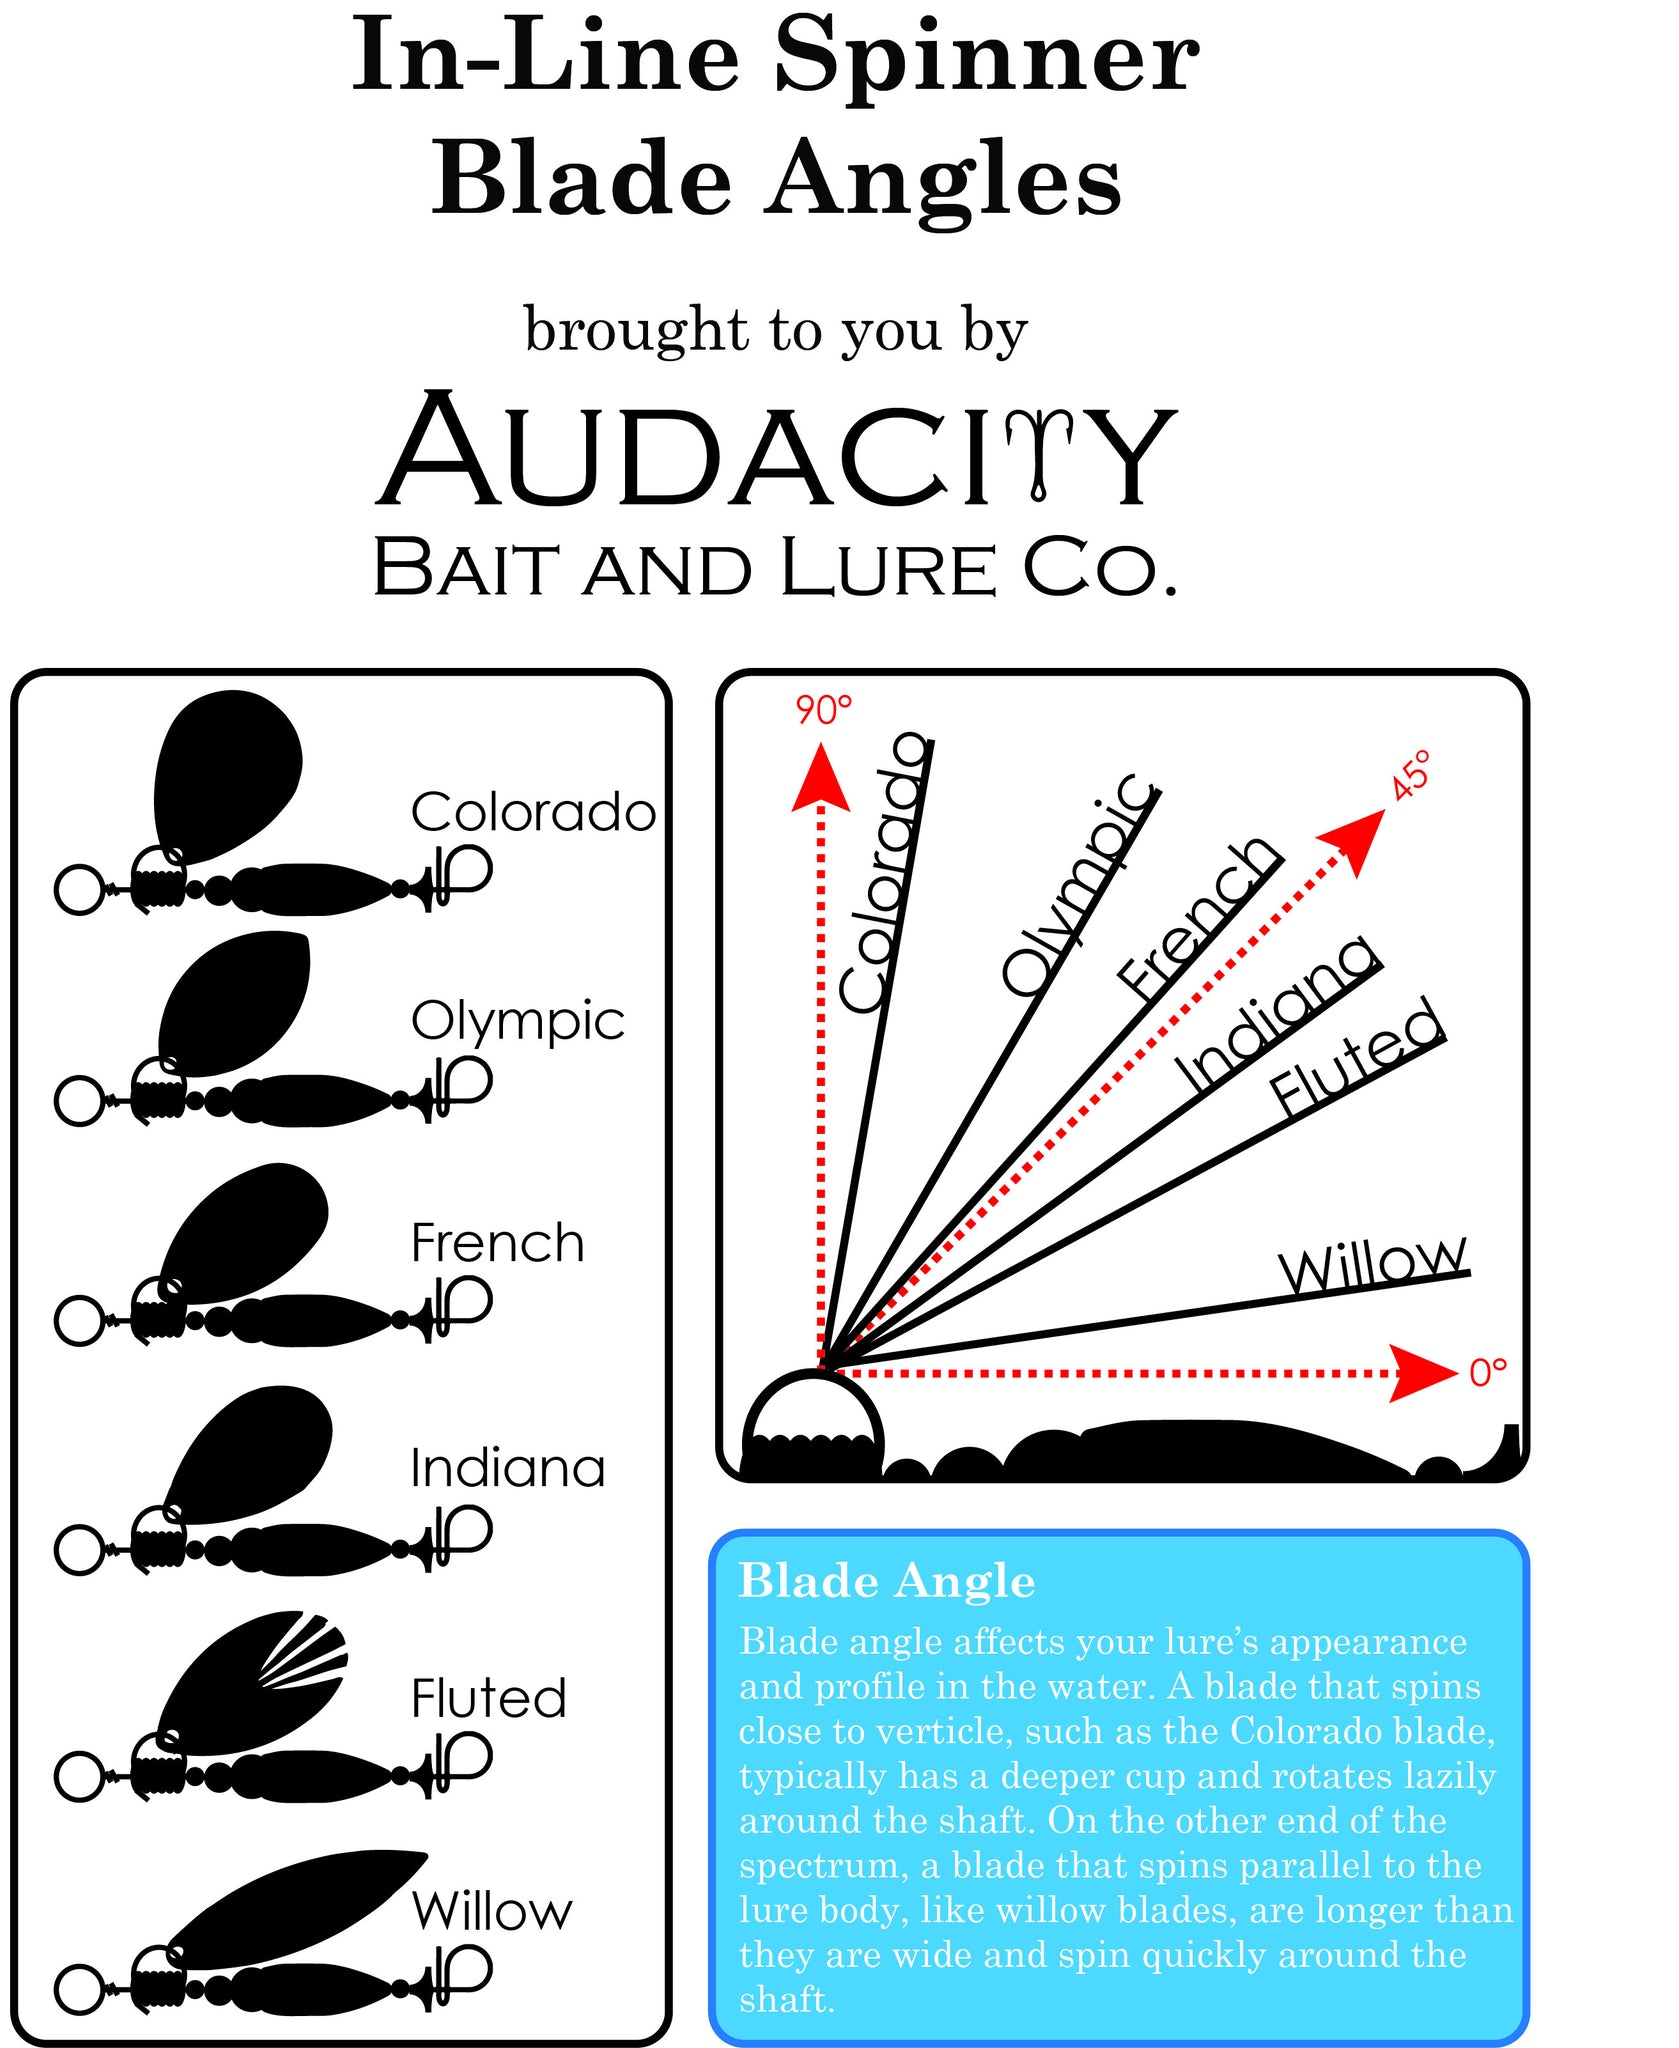 Audacity Bait and Lure Blade Angle Diagram